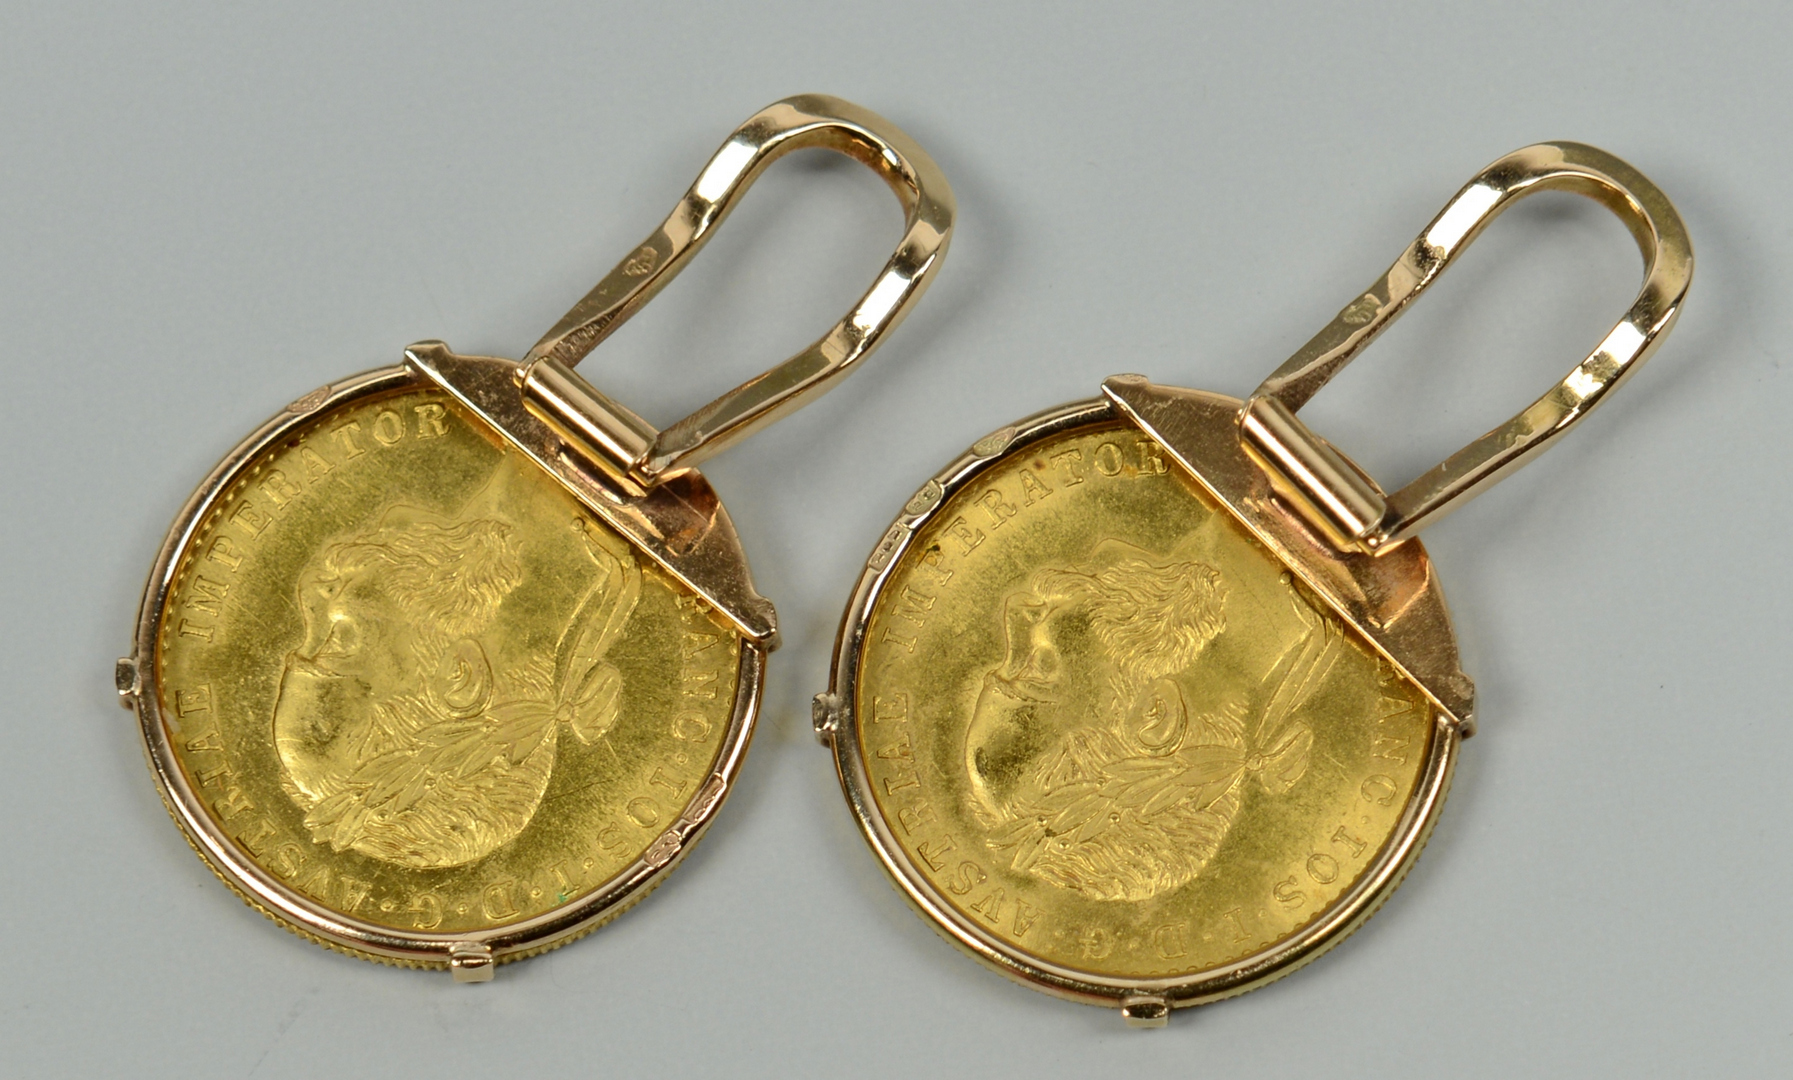 Lot 3088071: 3 1915 Austrian Ducat Coin Jewelry Items